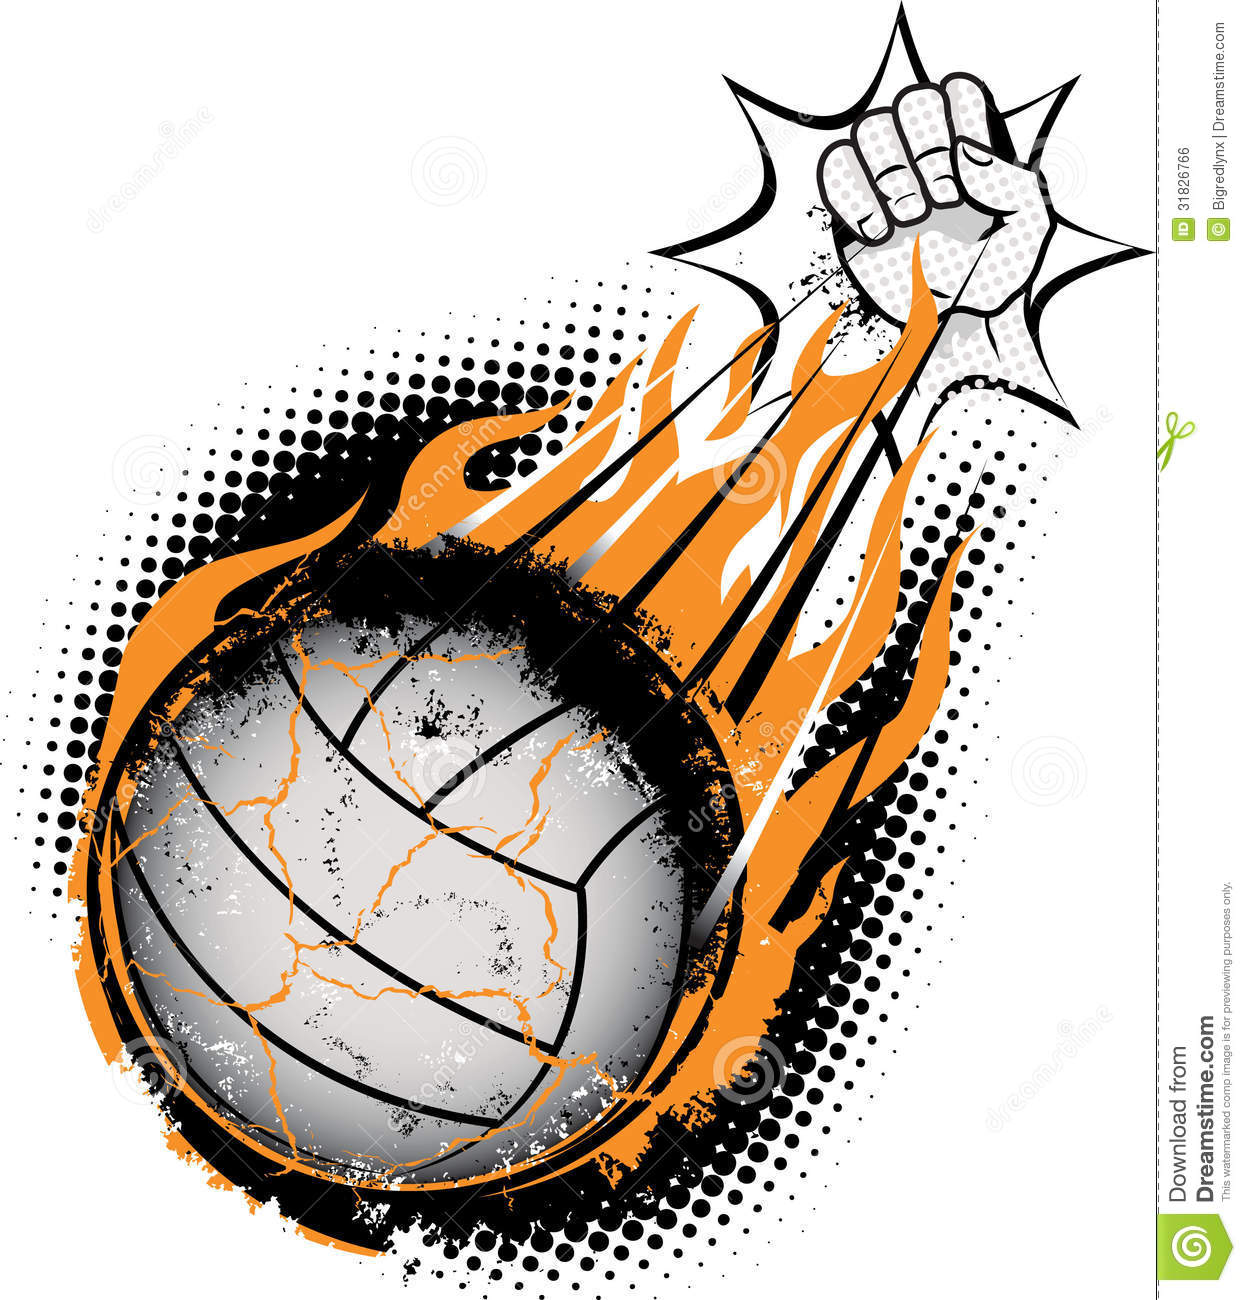 Volleyball Meteor Royalty Free Stock Image - Image: 31826766